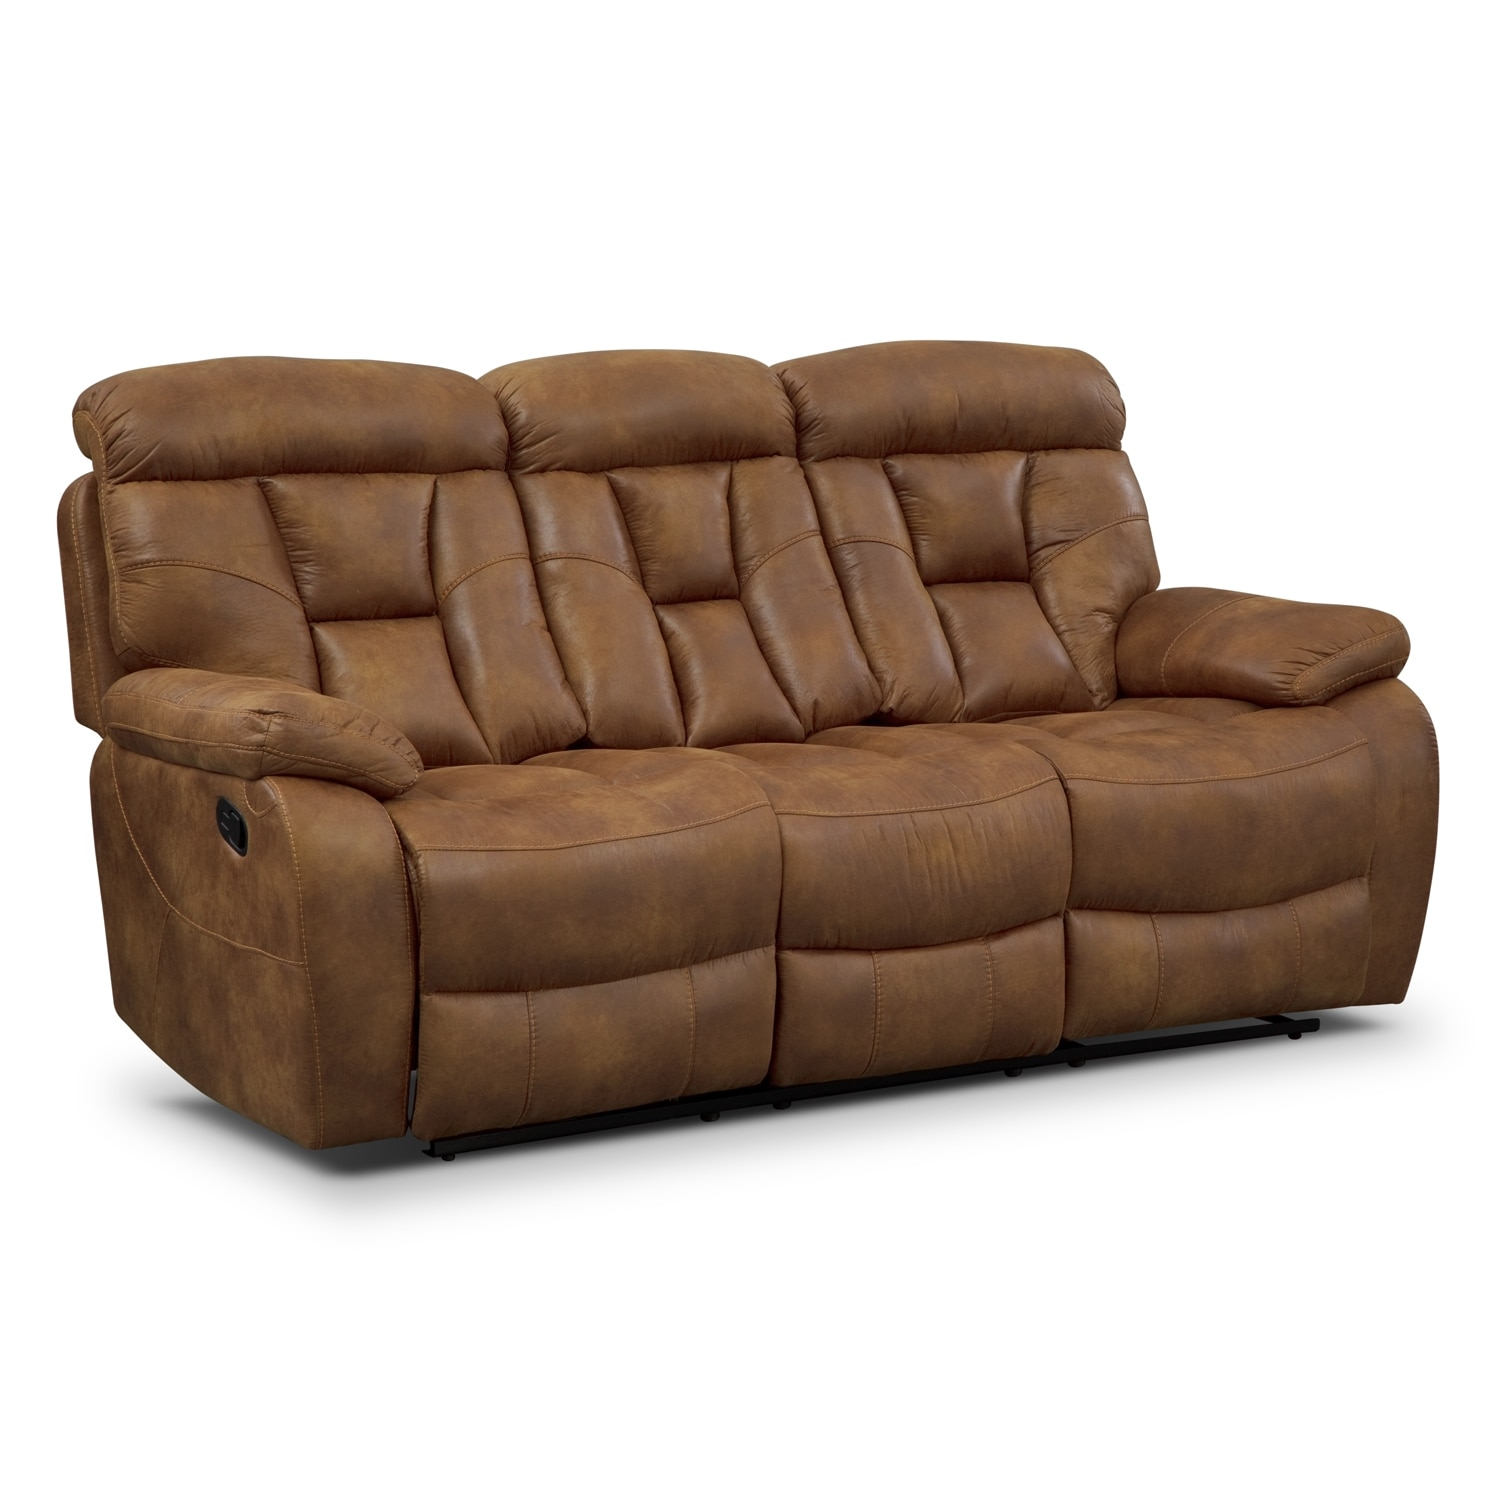 Dakota Reclining Sofa - Almond : American Signature Furniture